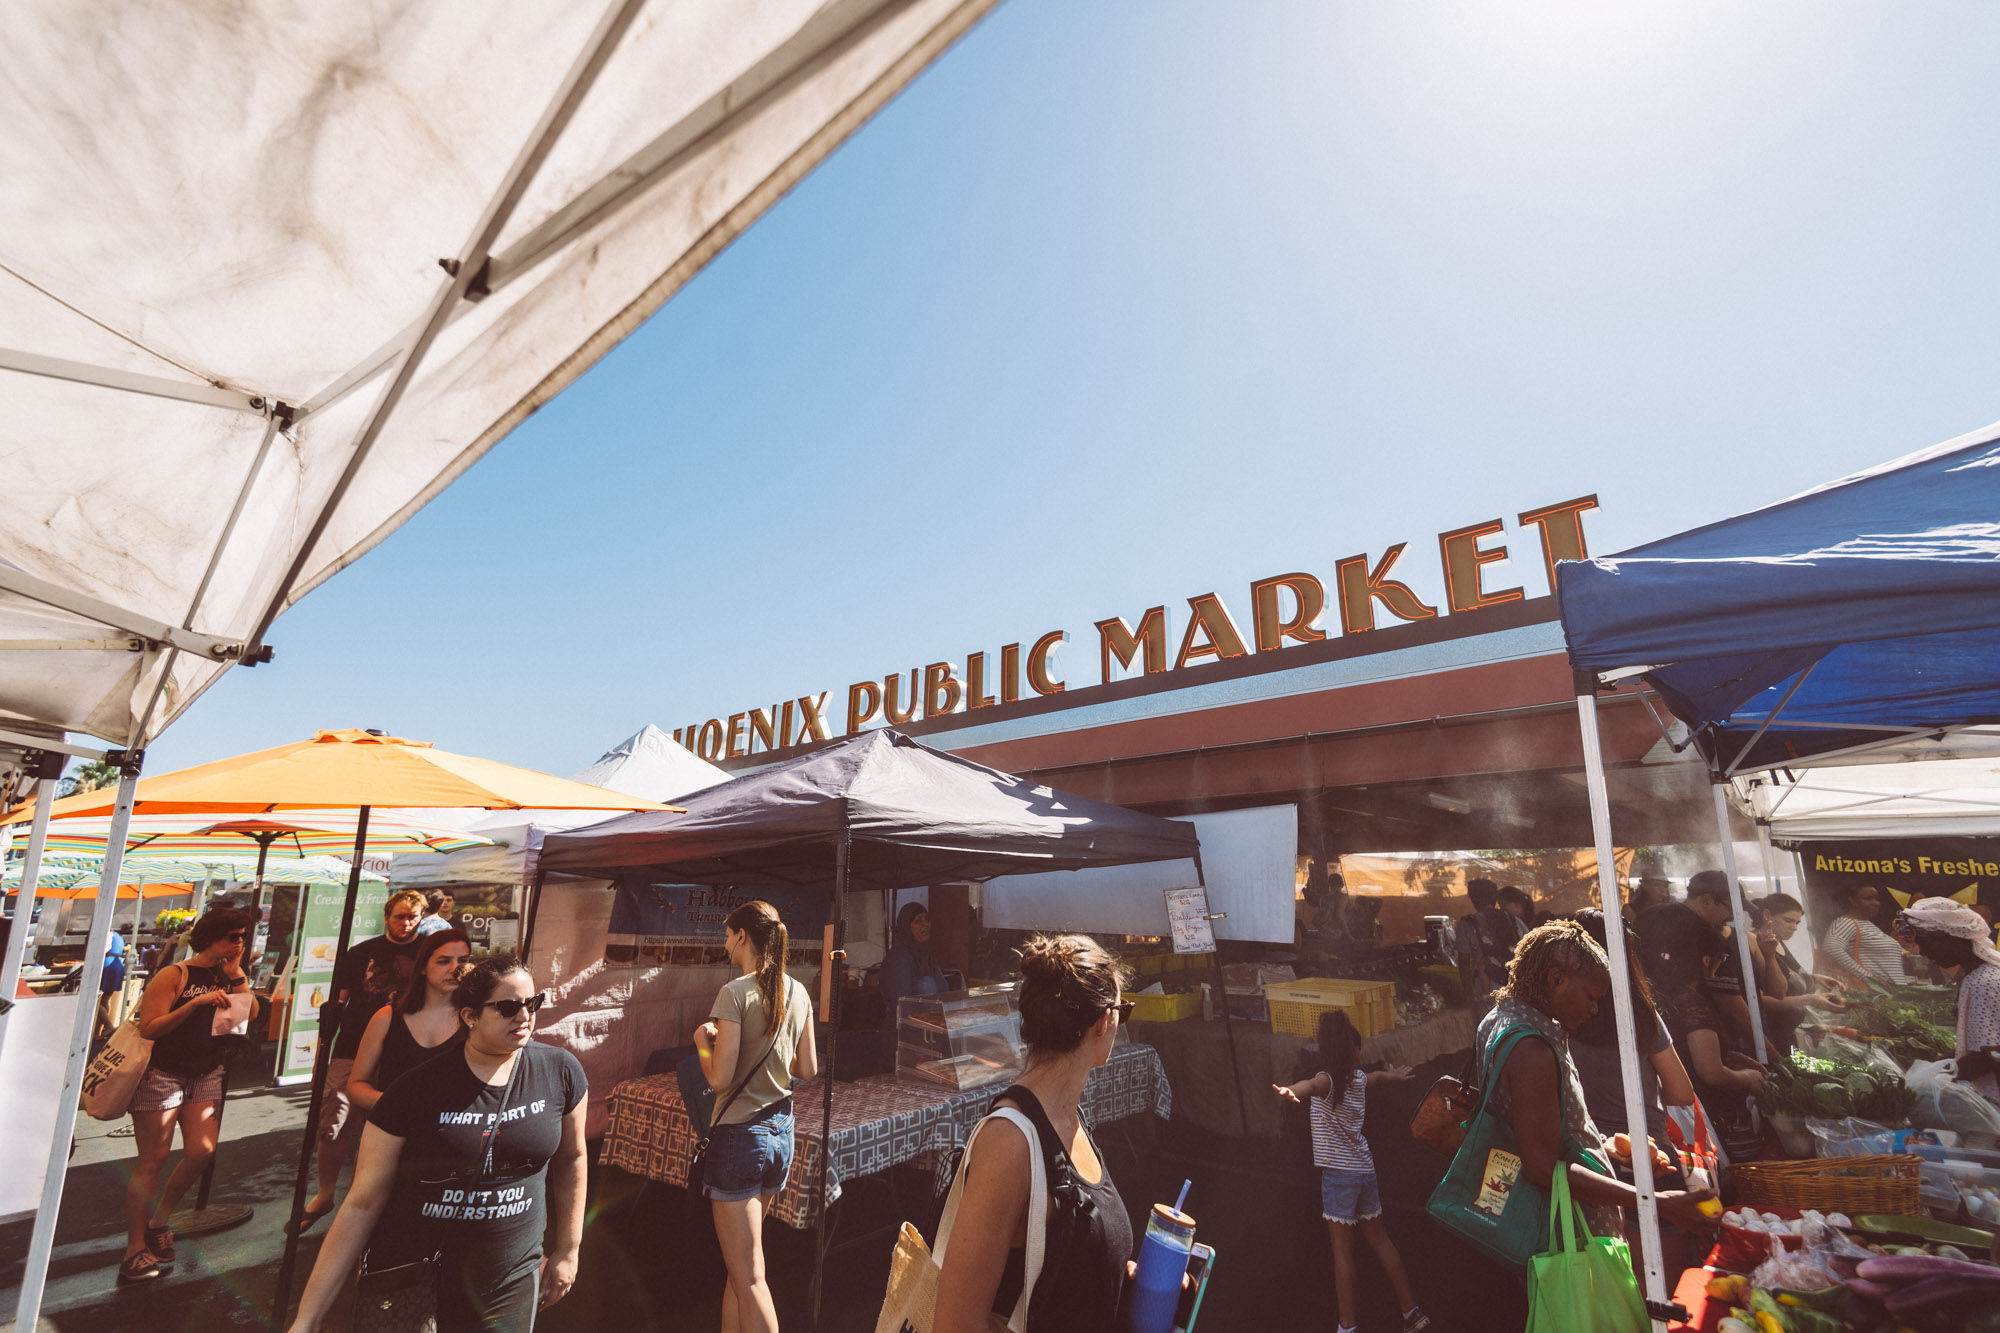 Things To Do In Phoenix — Phoenix Public Market — Jeff On The Road— All photos are under Copyright  © 2019 Jeff Frenette Photography / dezjeff. To use the photos, please contact me at dezjeff@me.com.